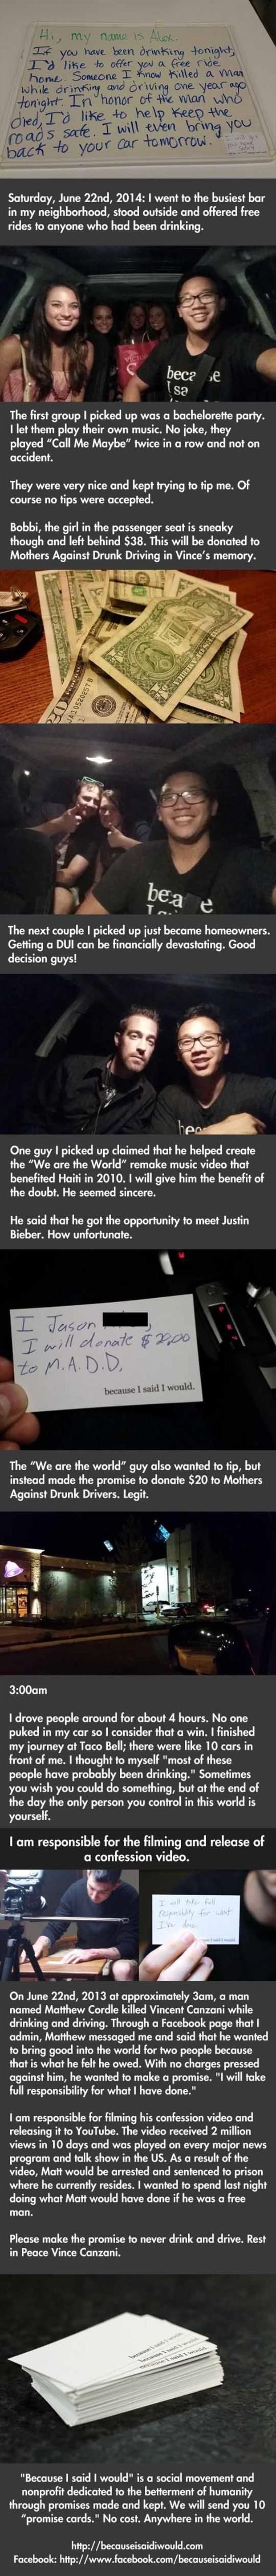 My faith in humanity has been restored a little more - Imgur